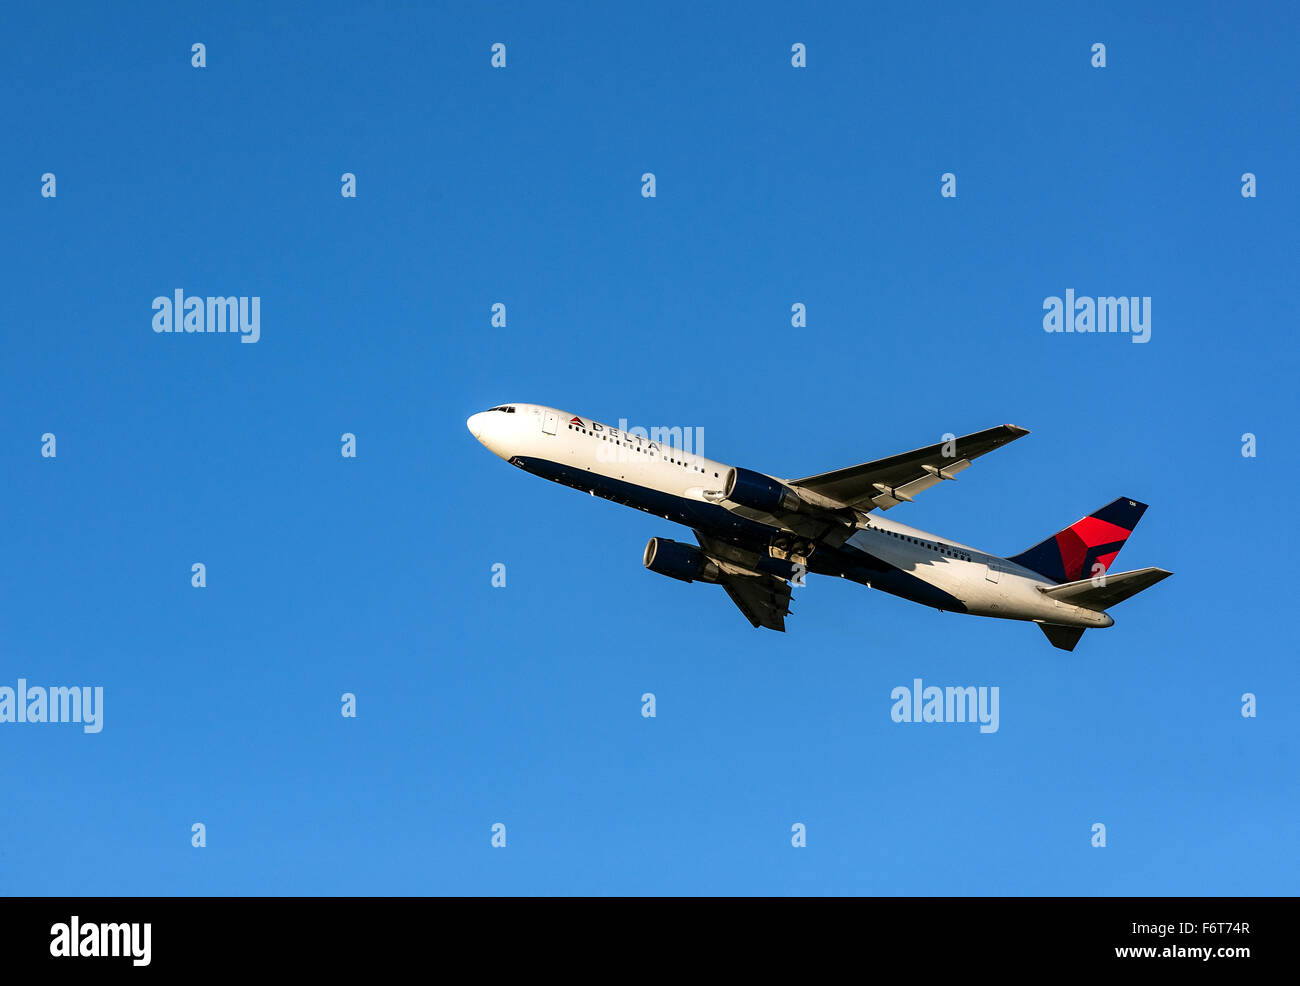 Delta Airline jet taking off from the Atlanta airport hub, Georgia, USA - Stock Image